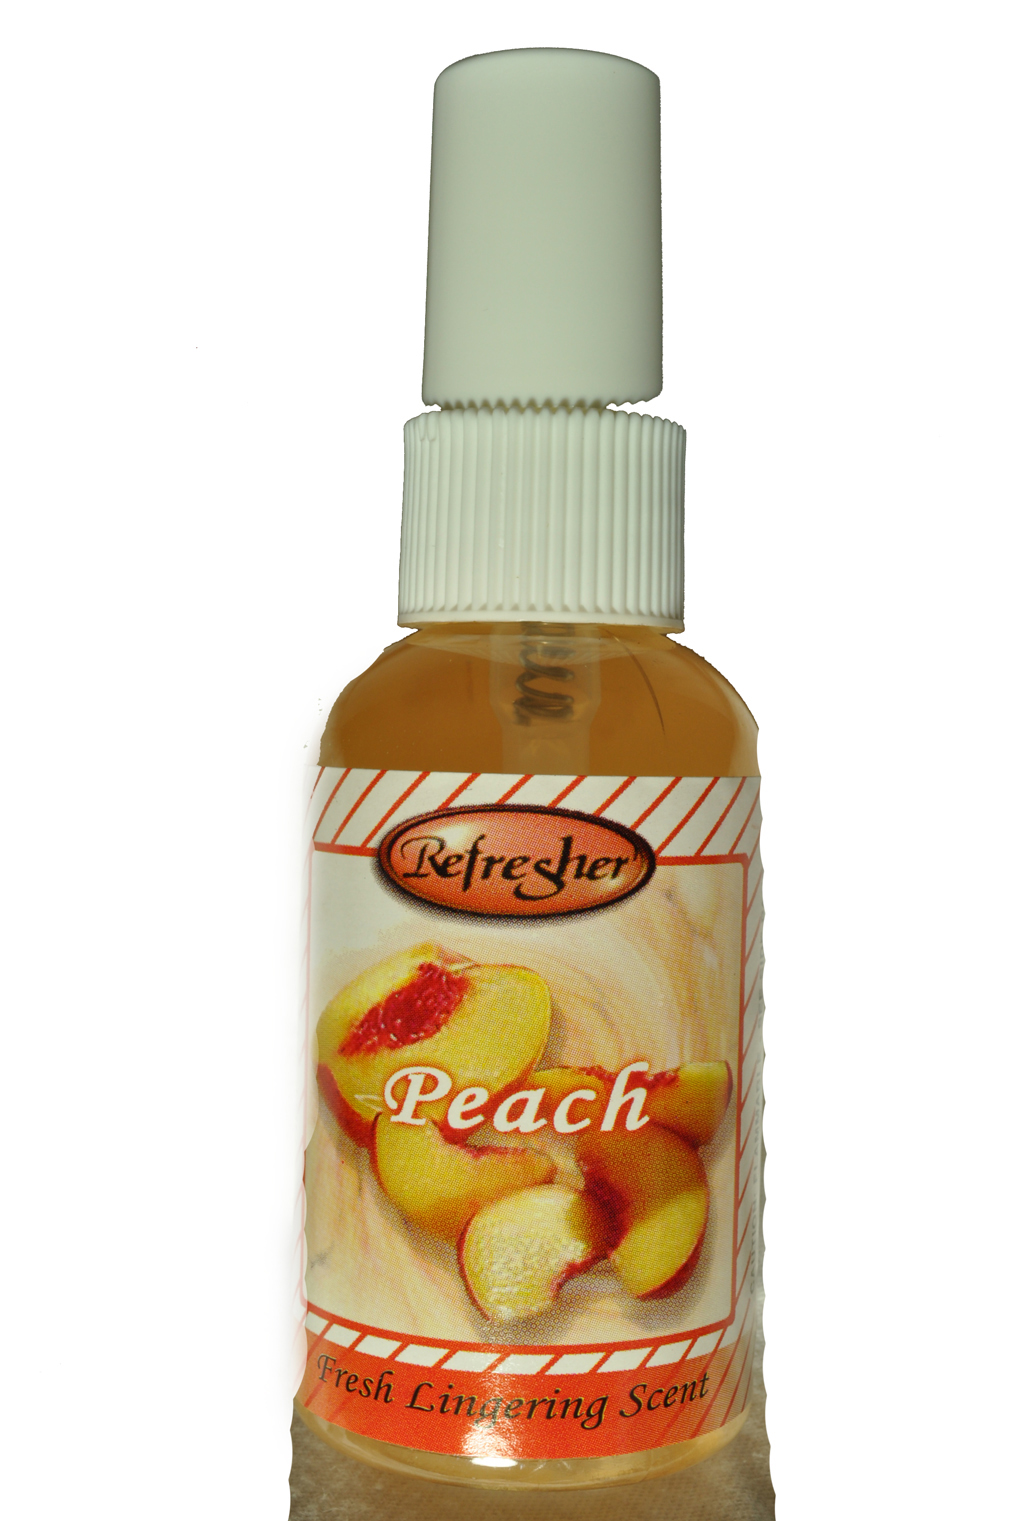 peach refresher spray 2oz 34 0141 01